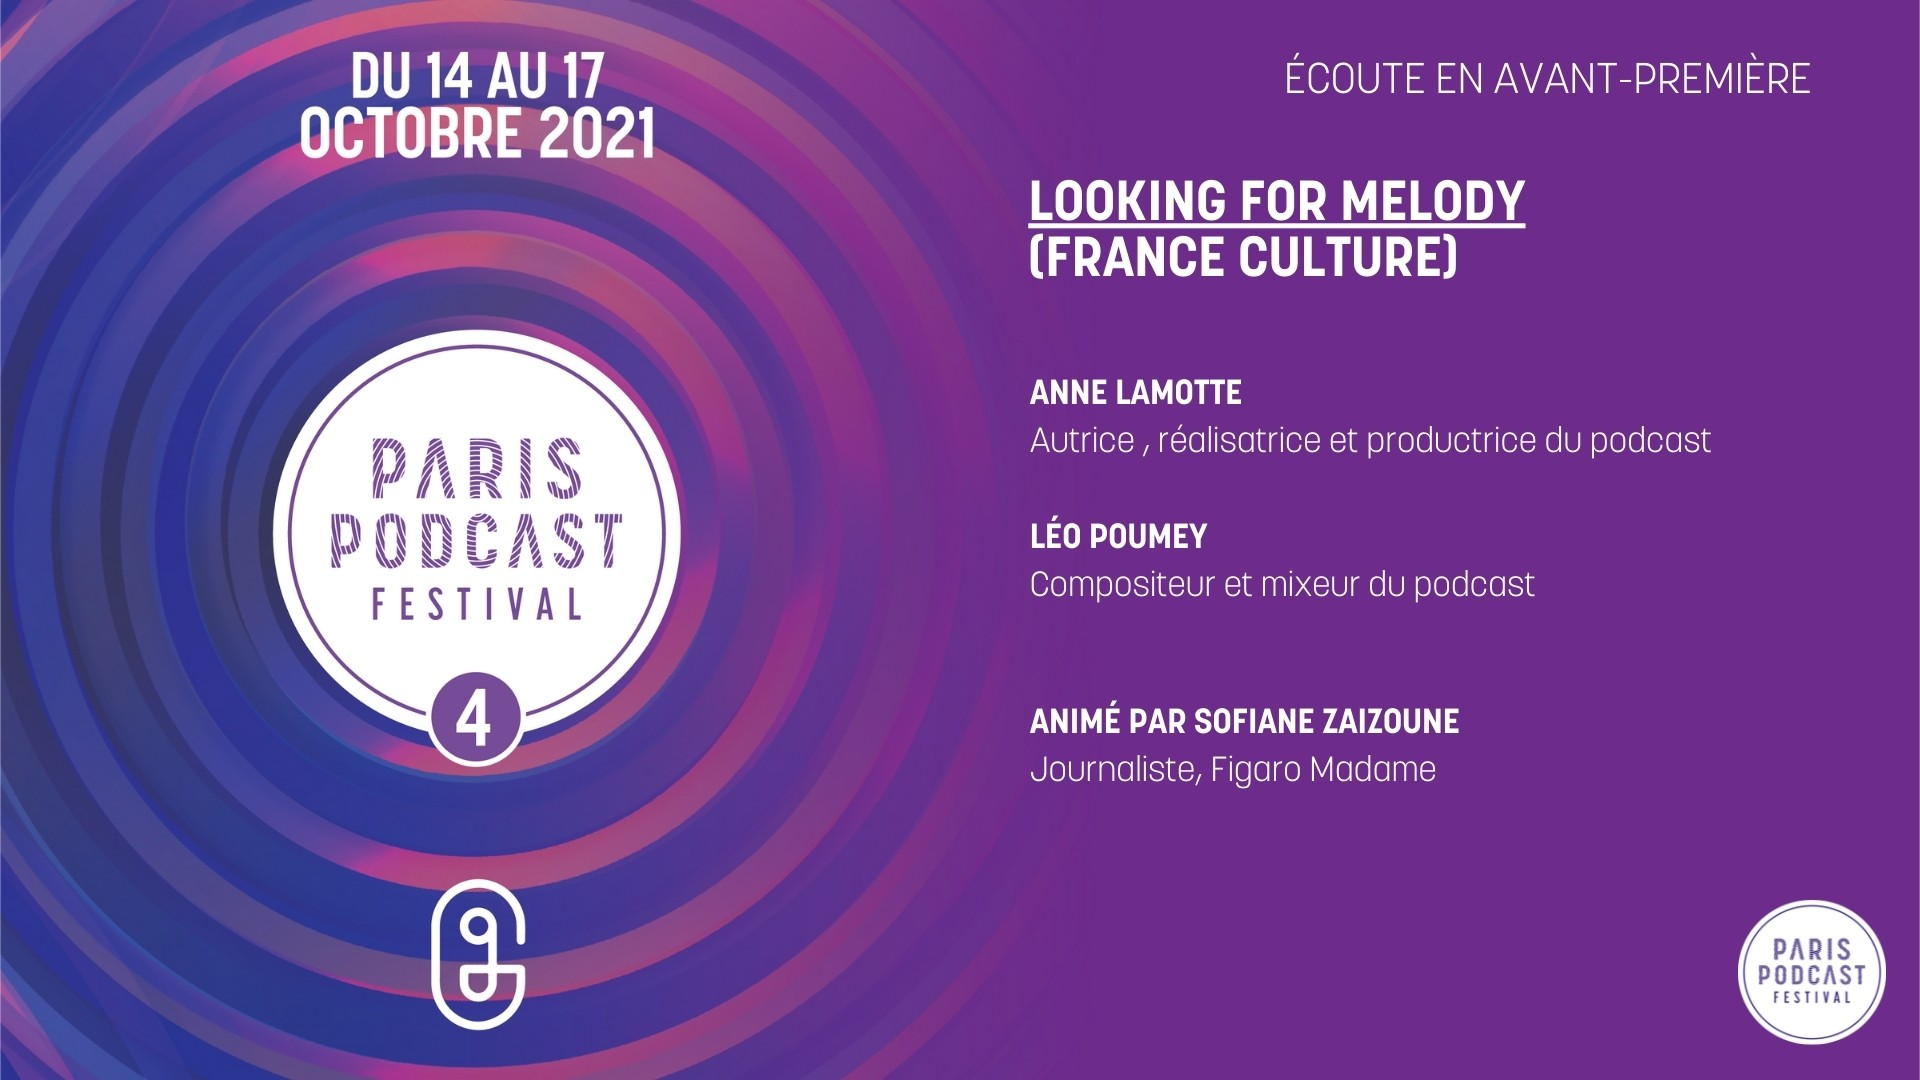 [Avant-première] Looking for Melody (France Culture)